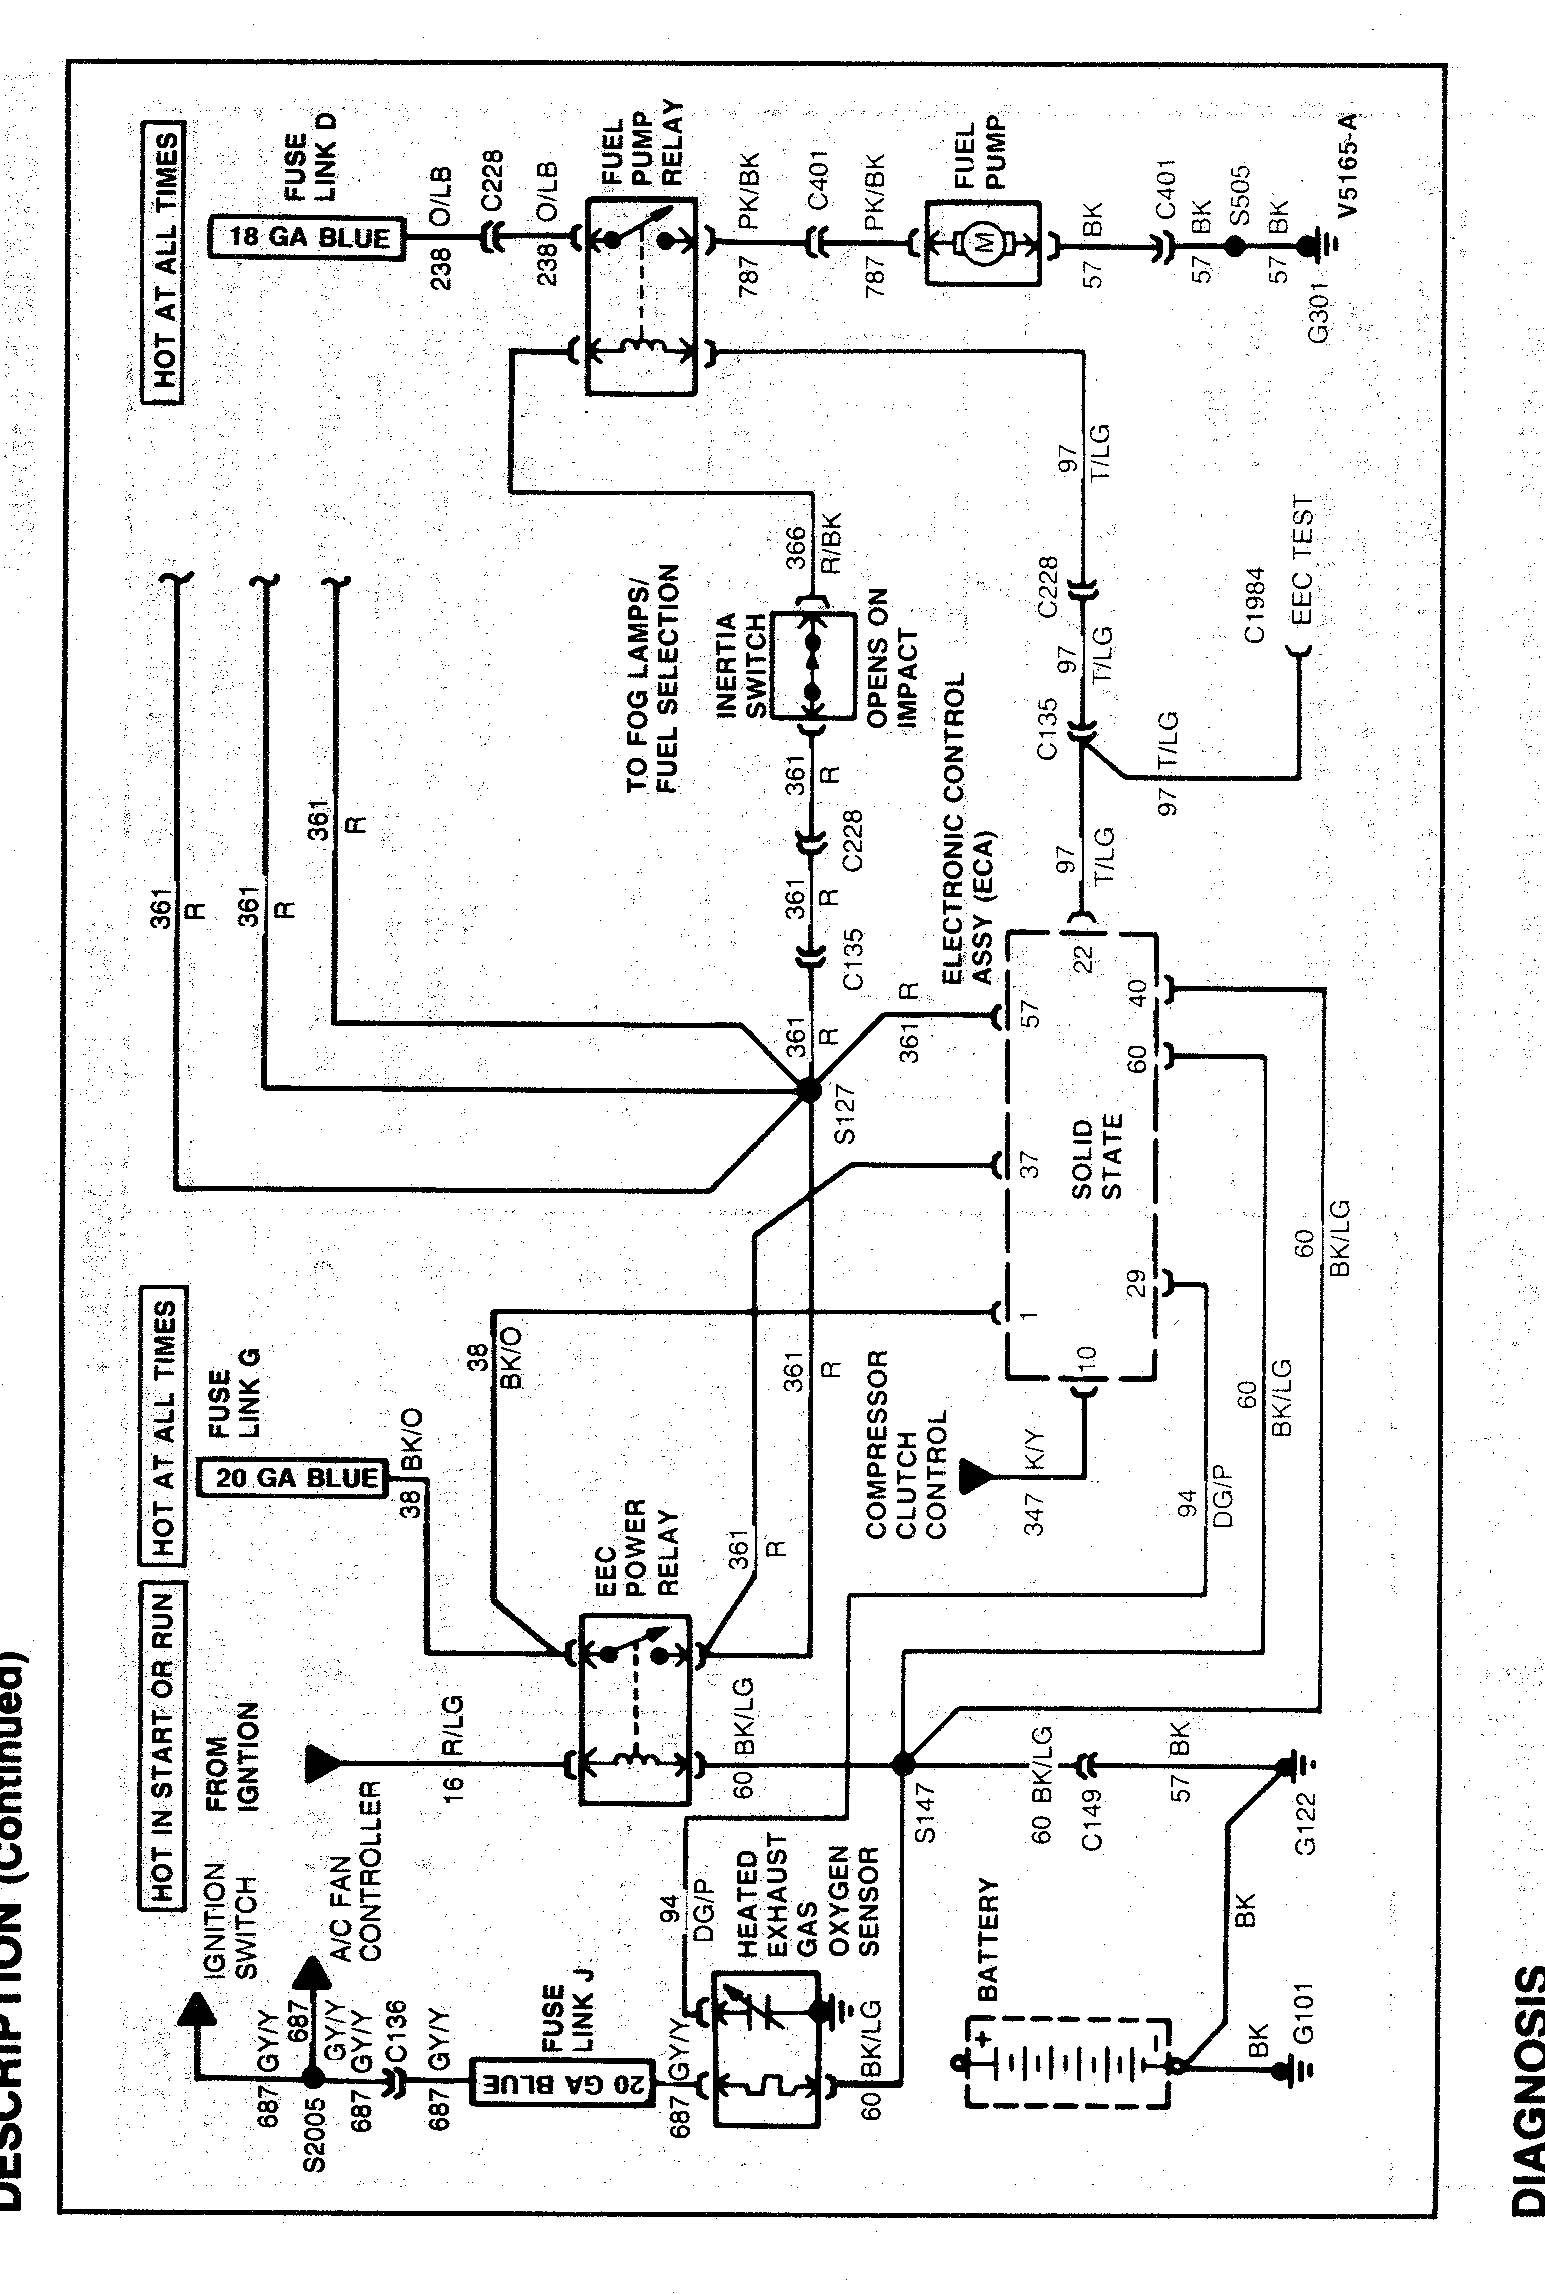 2004 ford explorer electrical diagram